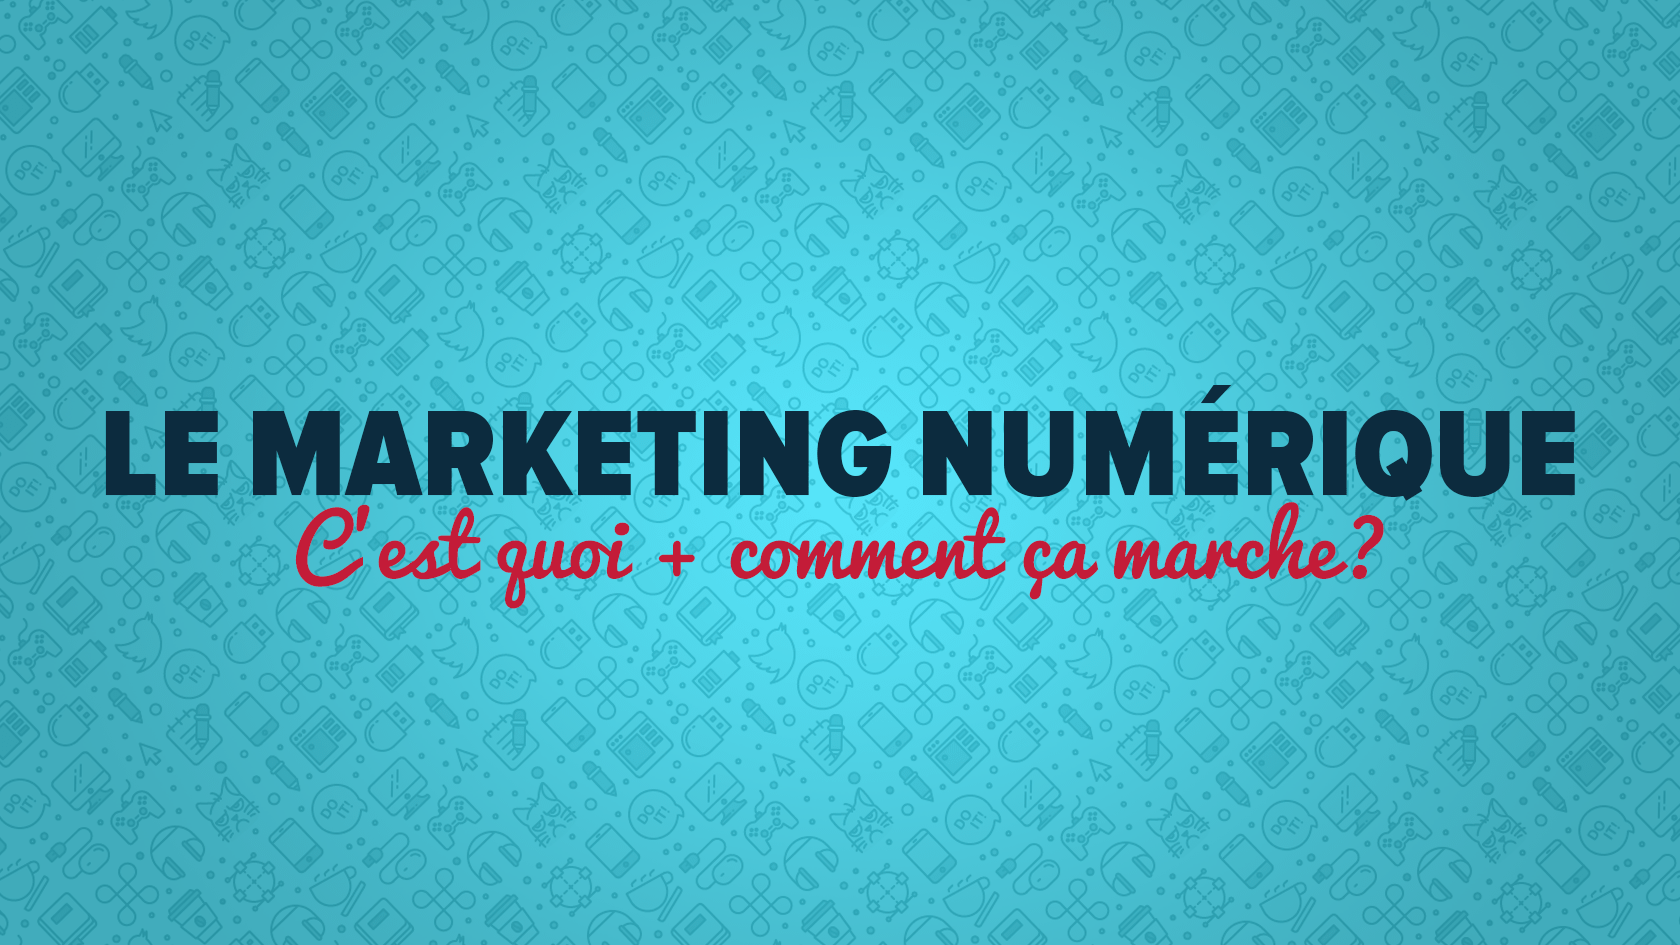 Formation 101 gratuite en marketing numérique/digital.